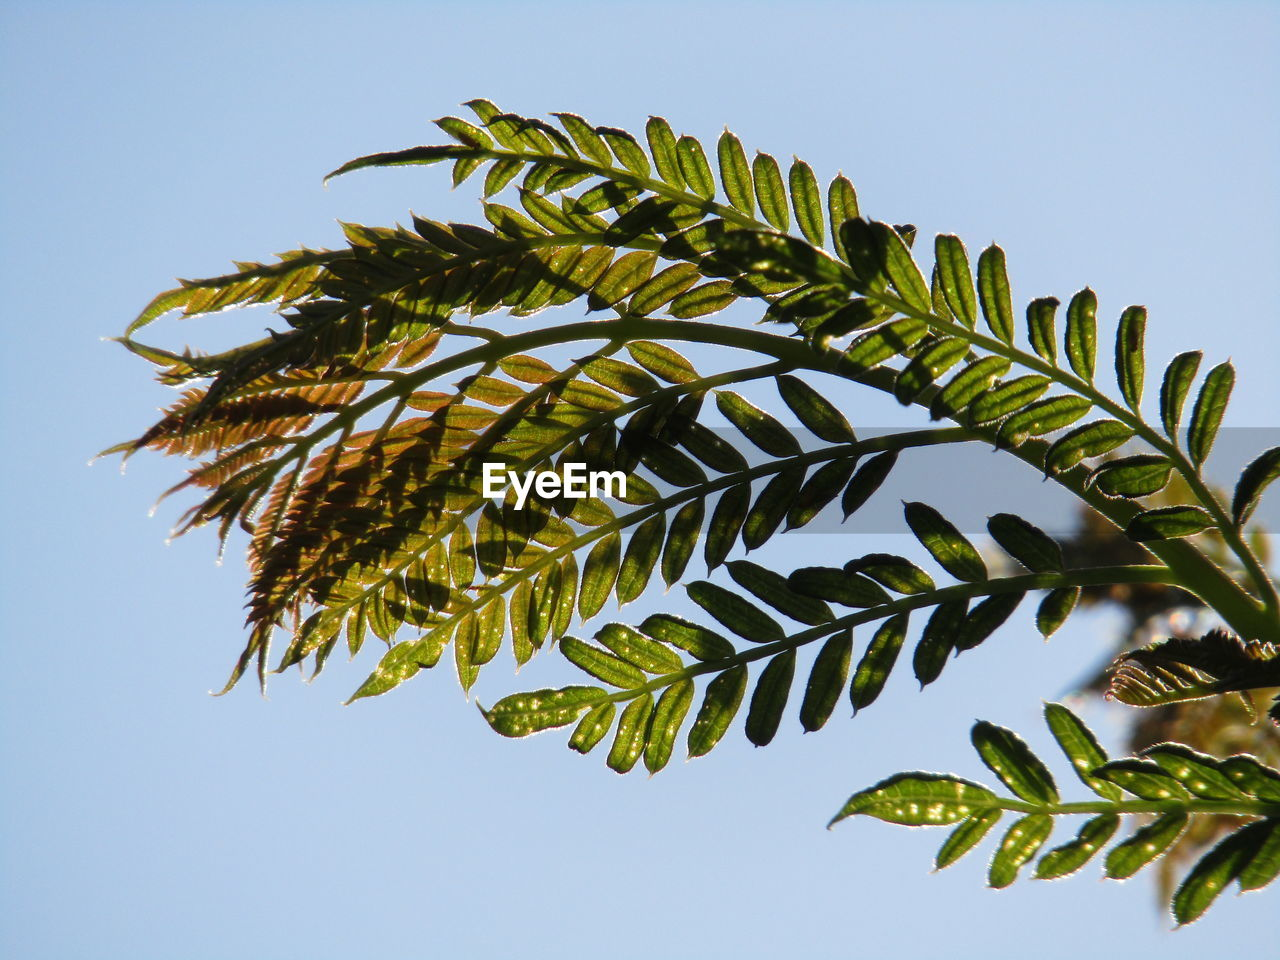 sky, plant, leaf, growth, low angle view, plant part, tree, nature, clear sky, no people, green color, day, beauty in nature, branch, outdoors, sunlight, tranquility, palm tree, tropical climate, palm leaf, leaves